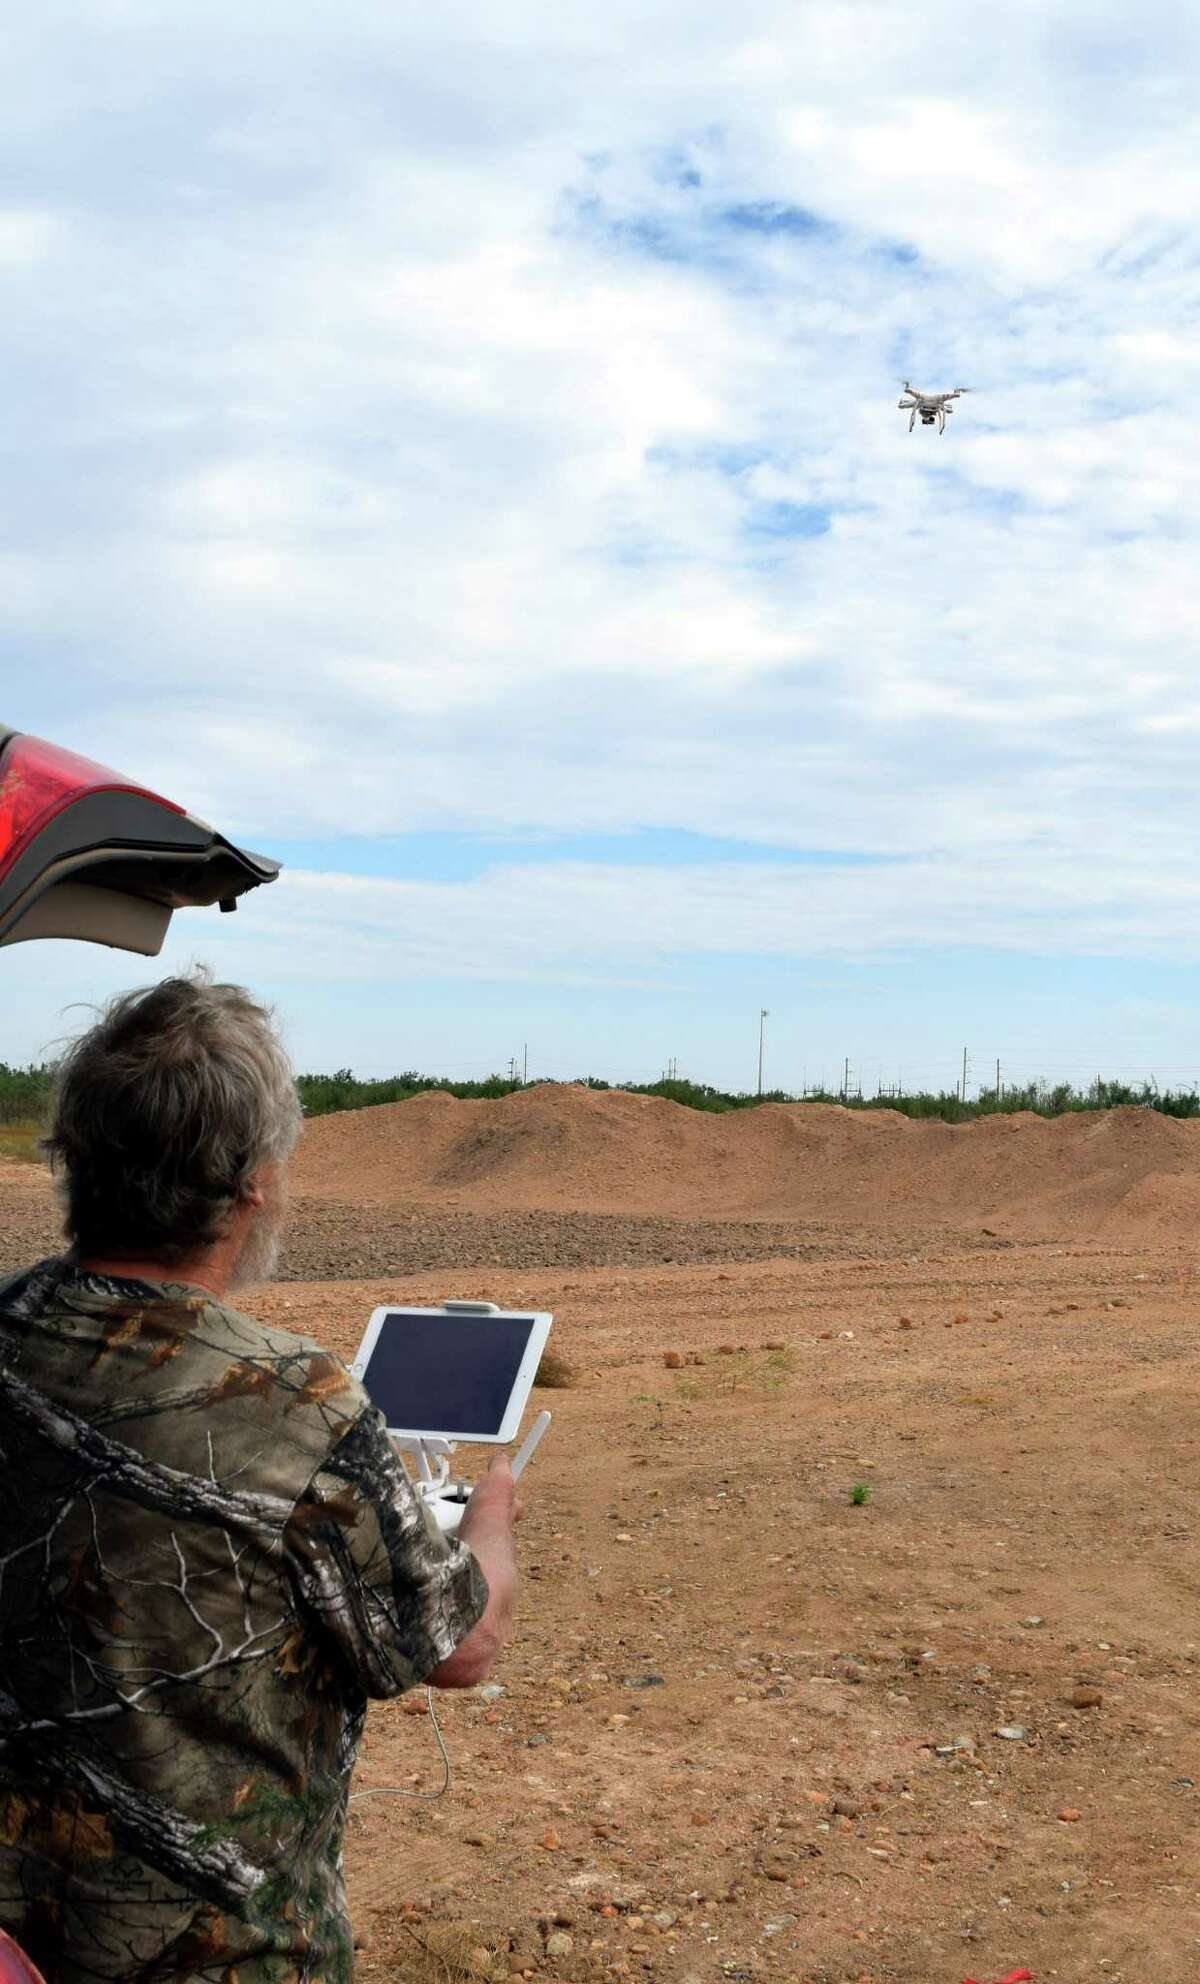 Lifting off after being program for a specific flight pattern, this drone being put into use by Jim Raby of San Antonio has helped the hunter use high-tech to help monitor his hunting area.